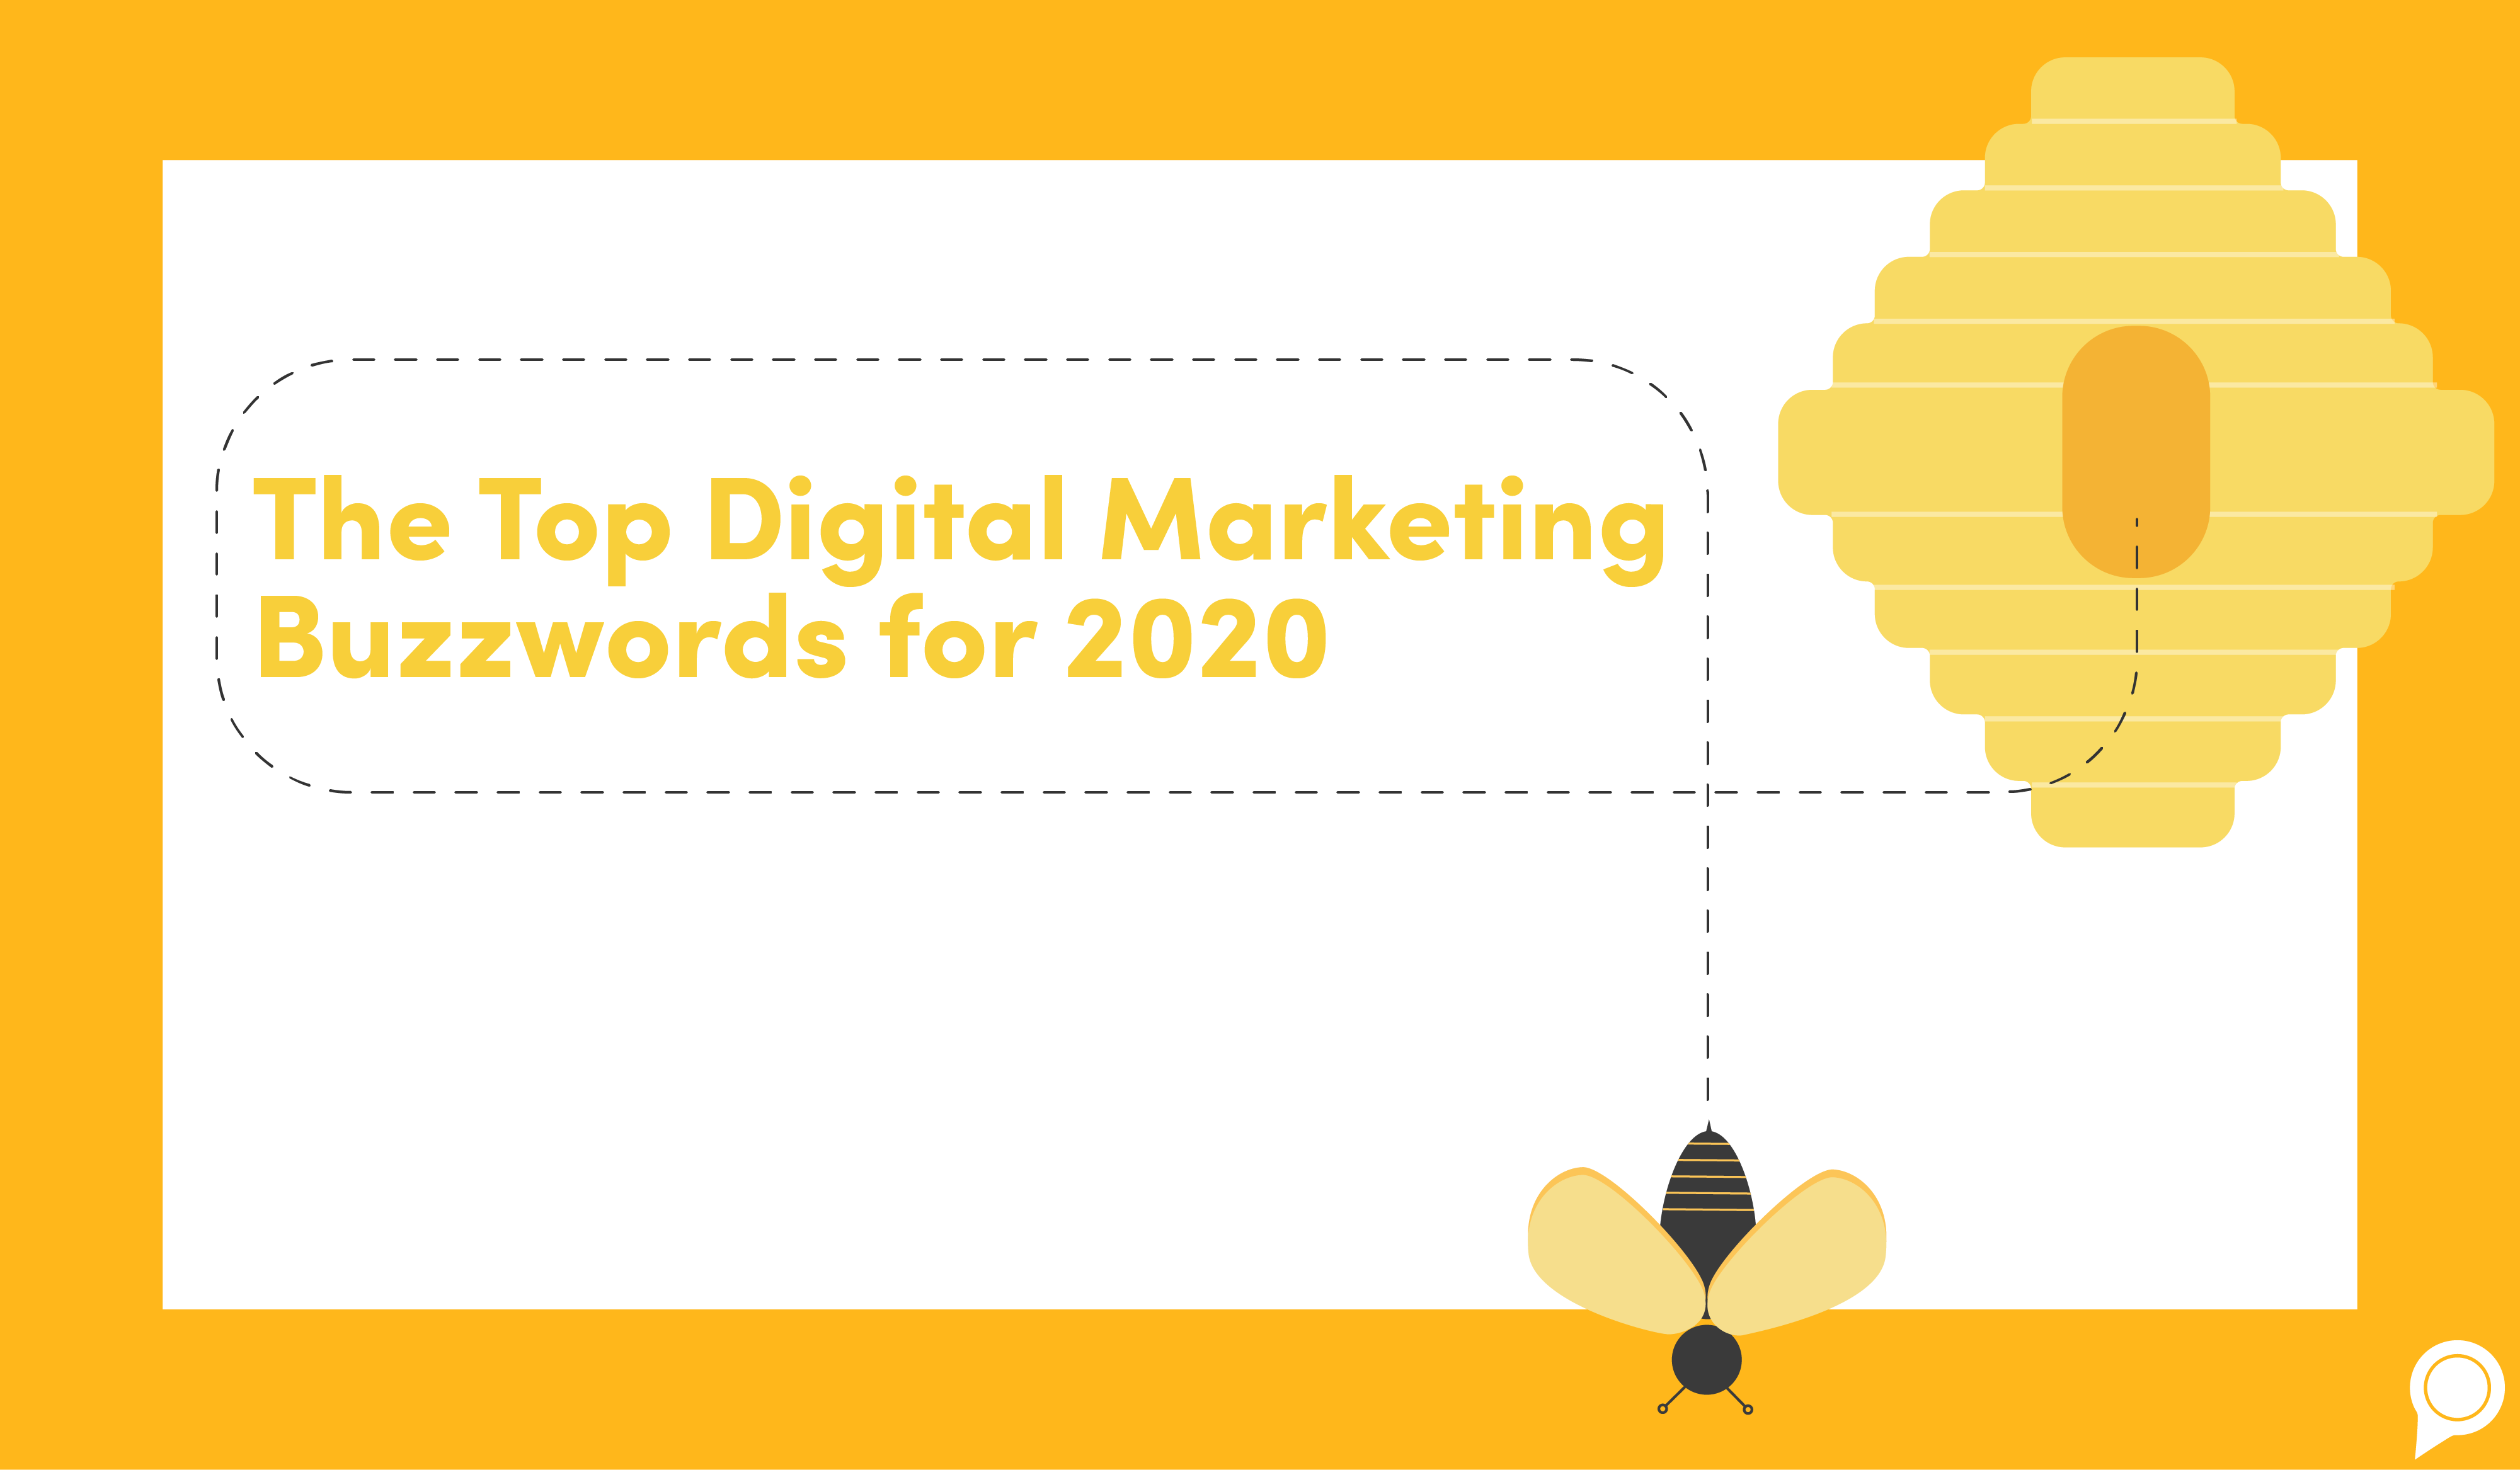 The Top Digital Marketing Buzzwords for 2020 [Infographic]